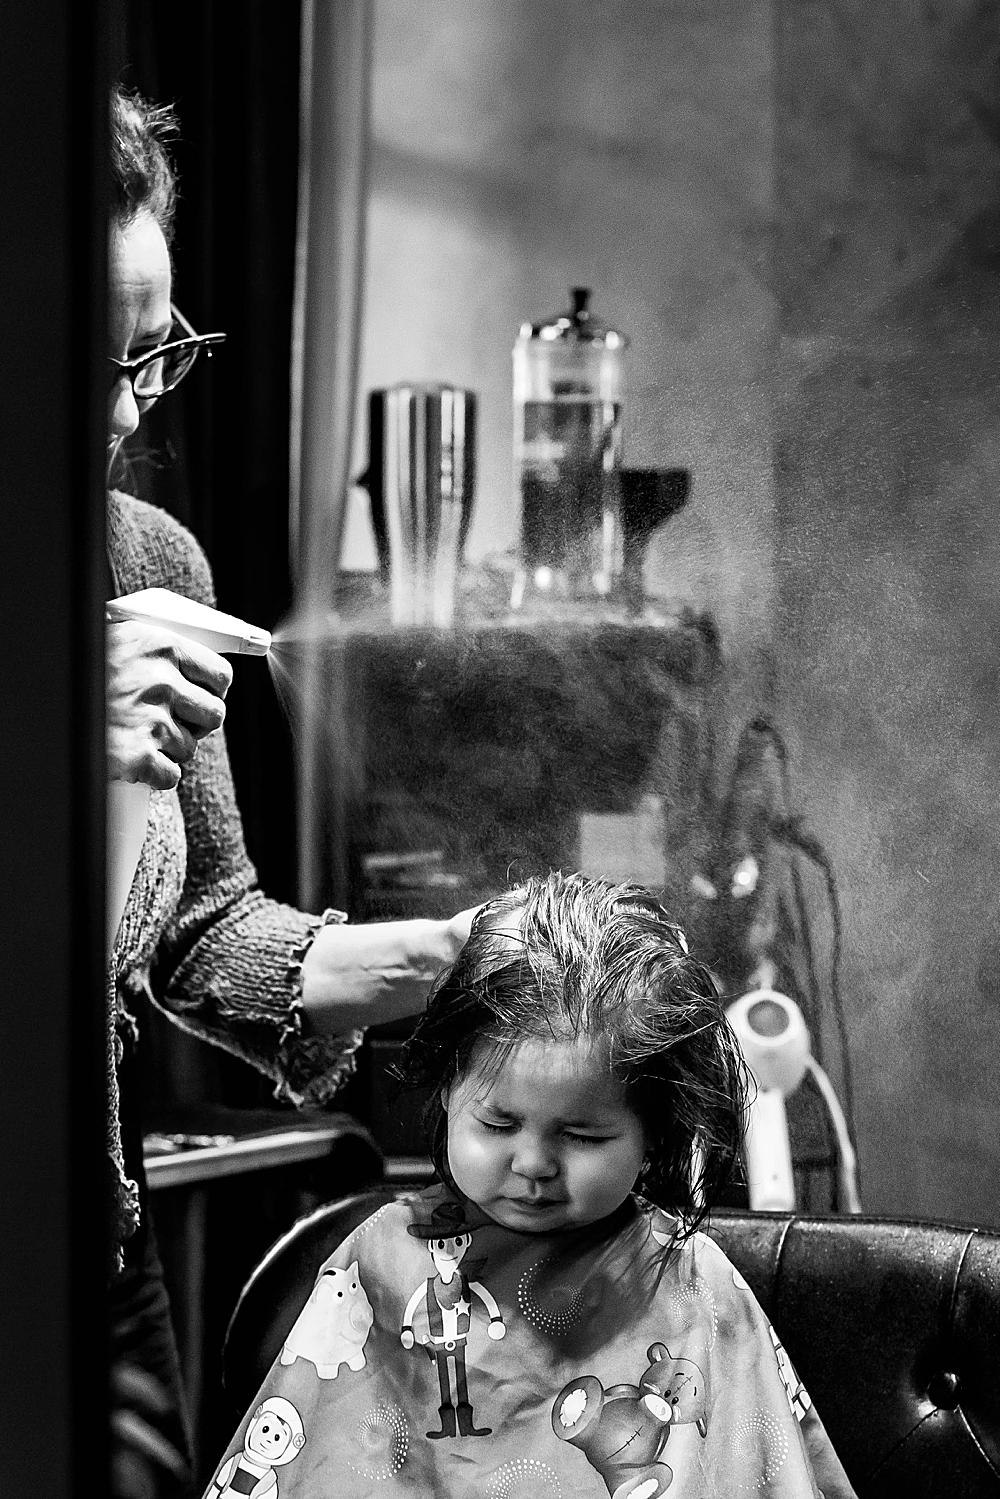 Toddler getting haircut at Sandalwood Salon in downtown Bellingham